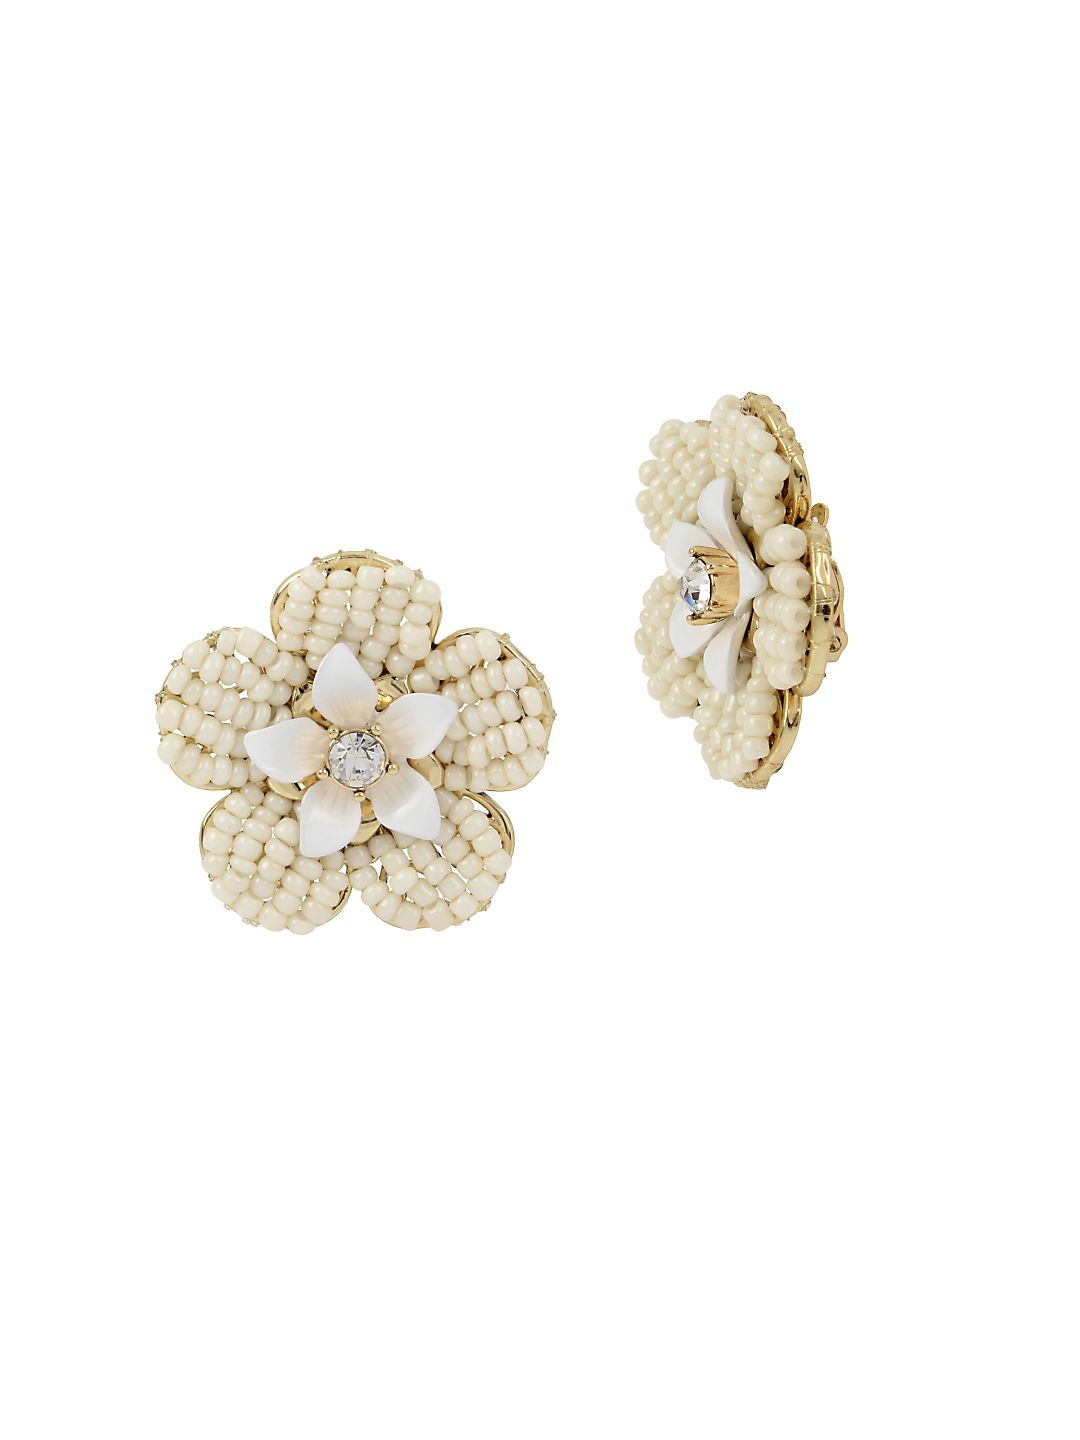 Vintage Pearl White Flower Crystal and Faux Pearl Stud Earrings